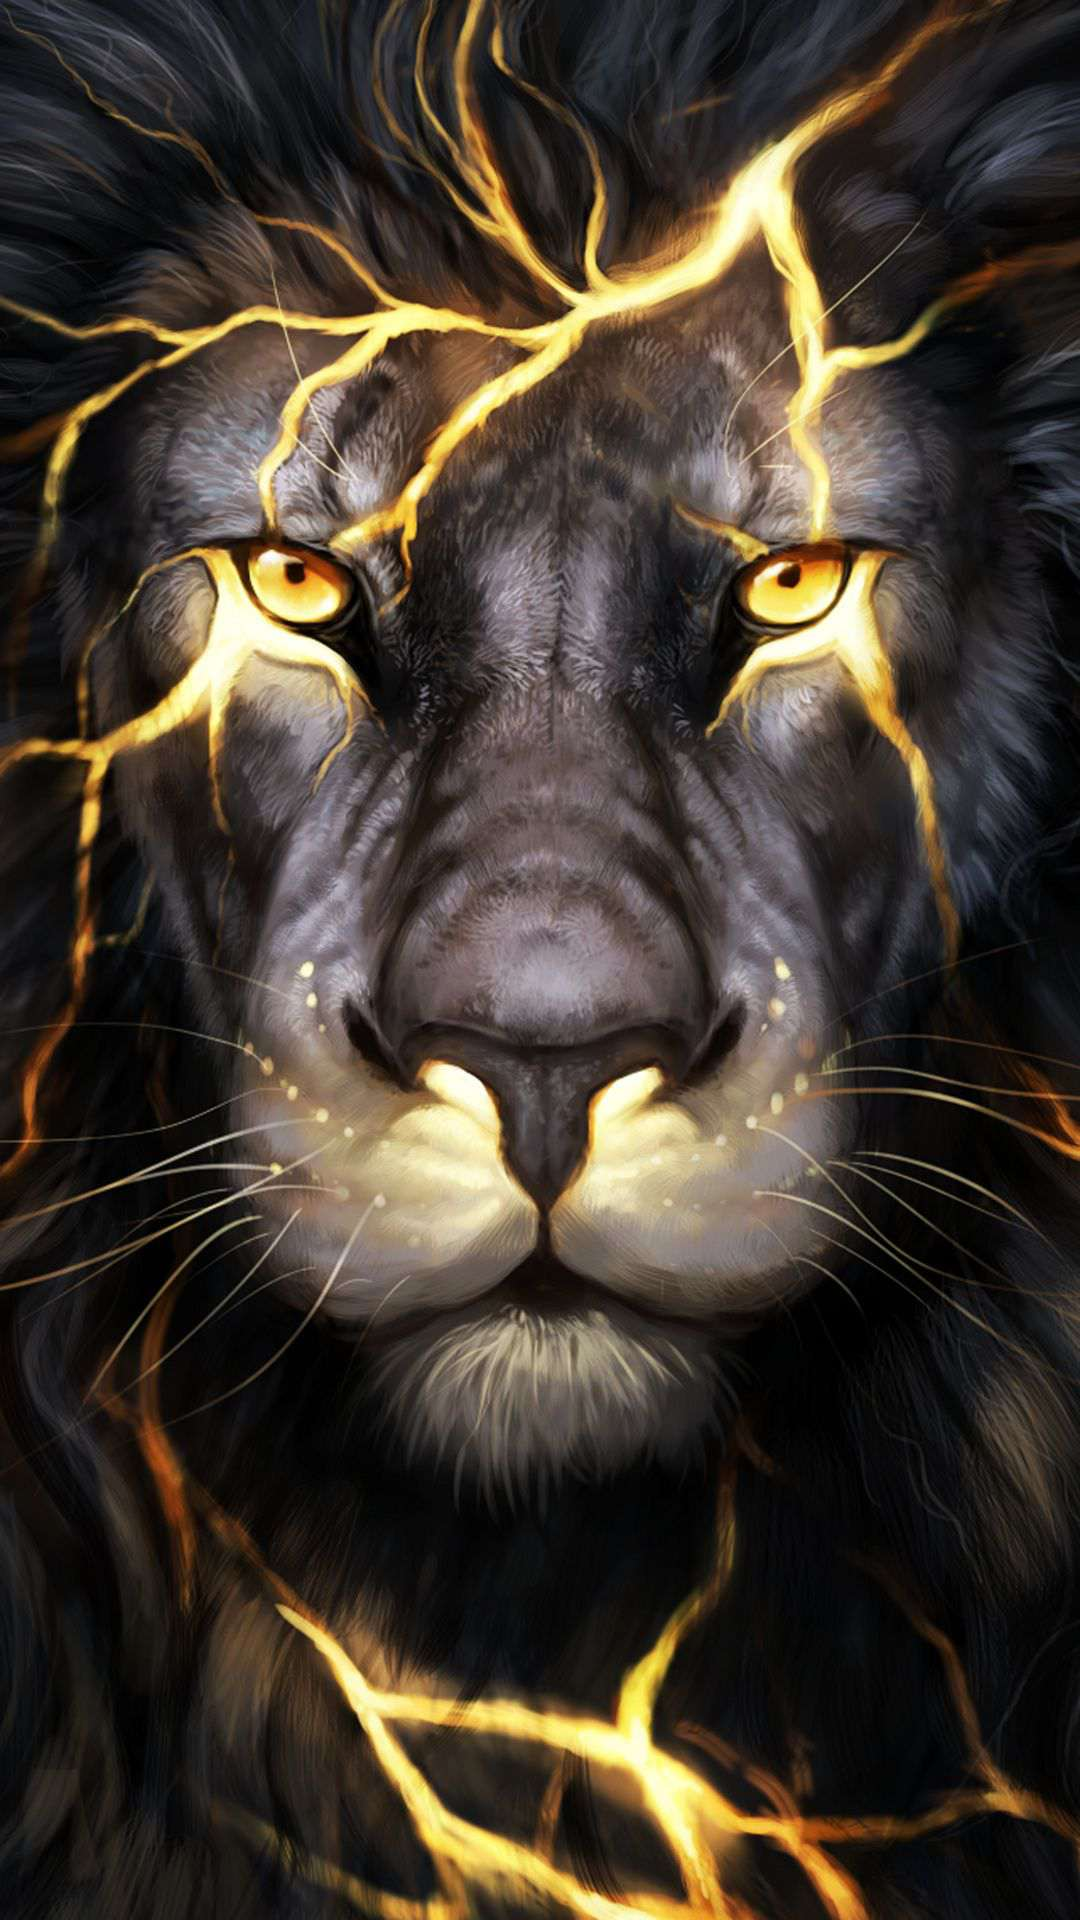 Cool Pictures Of Lions 736x1308 Download Hd Wallpaper Wallpapertip